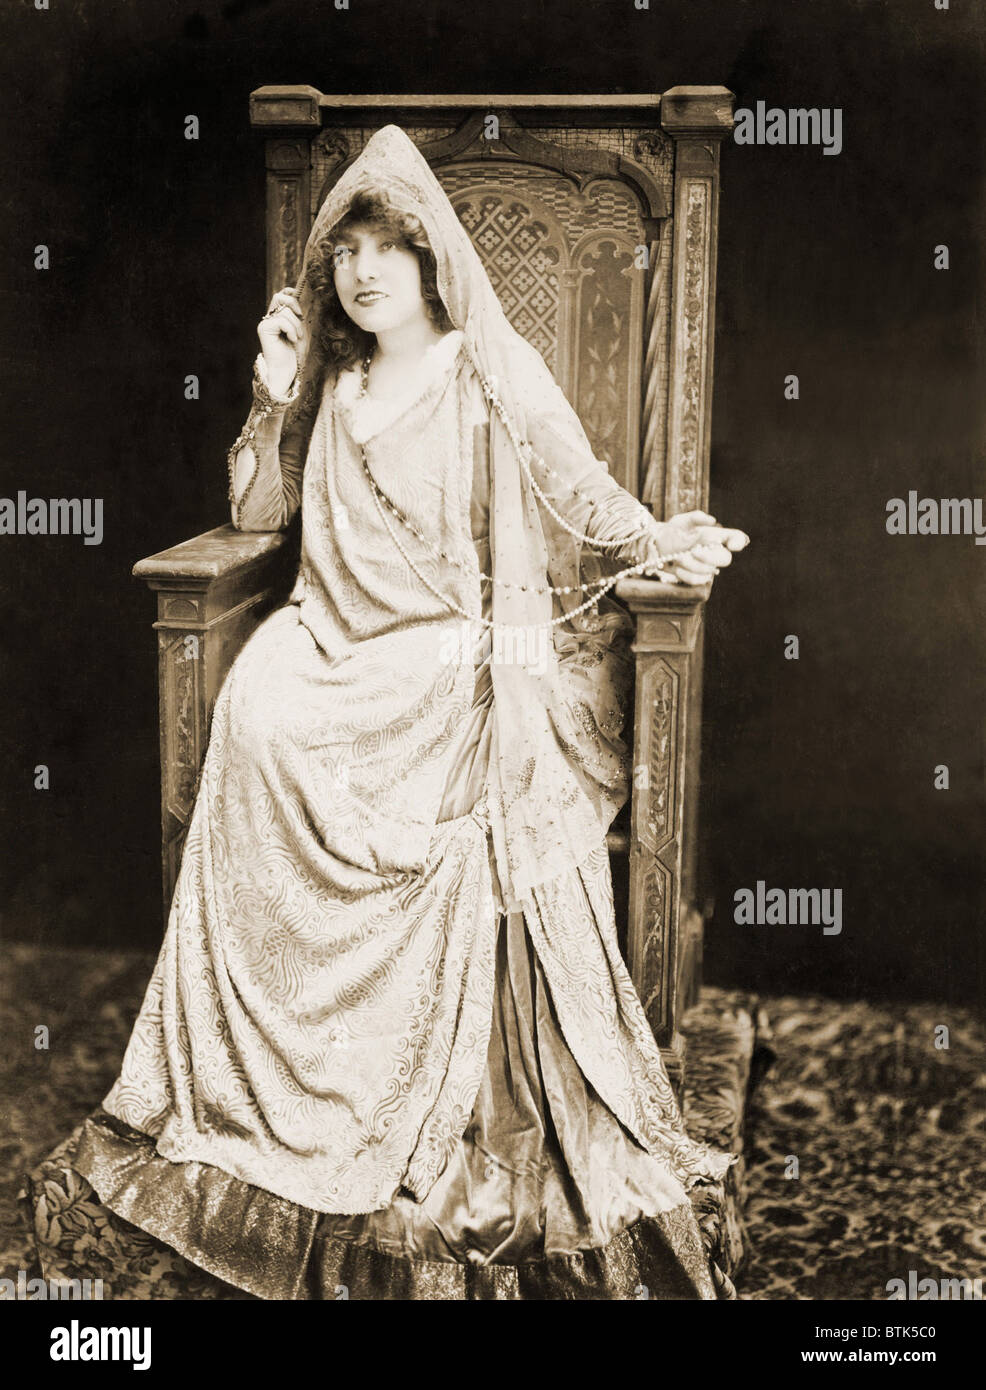 Sarah Bernhardt (1844-1923), French actress, posed in stage costume in 1917. She continued to perform until her - Stock Image